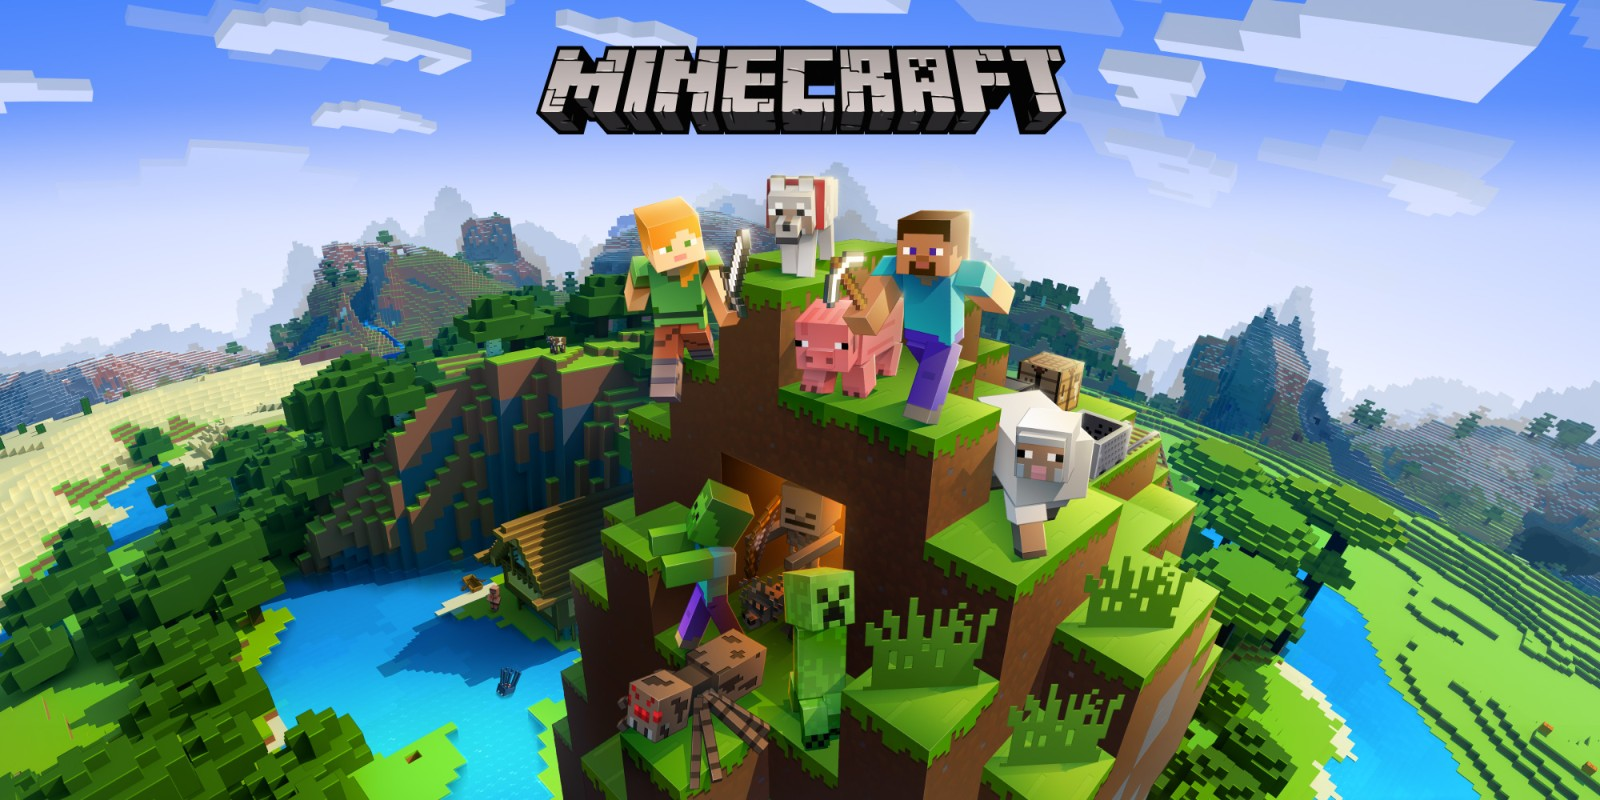 Minecraft Nintendo Switch Spiele Nintendo - Minecraft wii u server erstellen deutsch